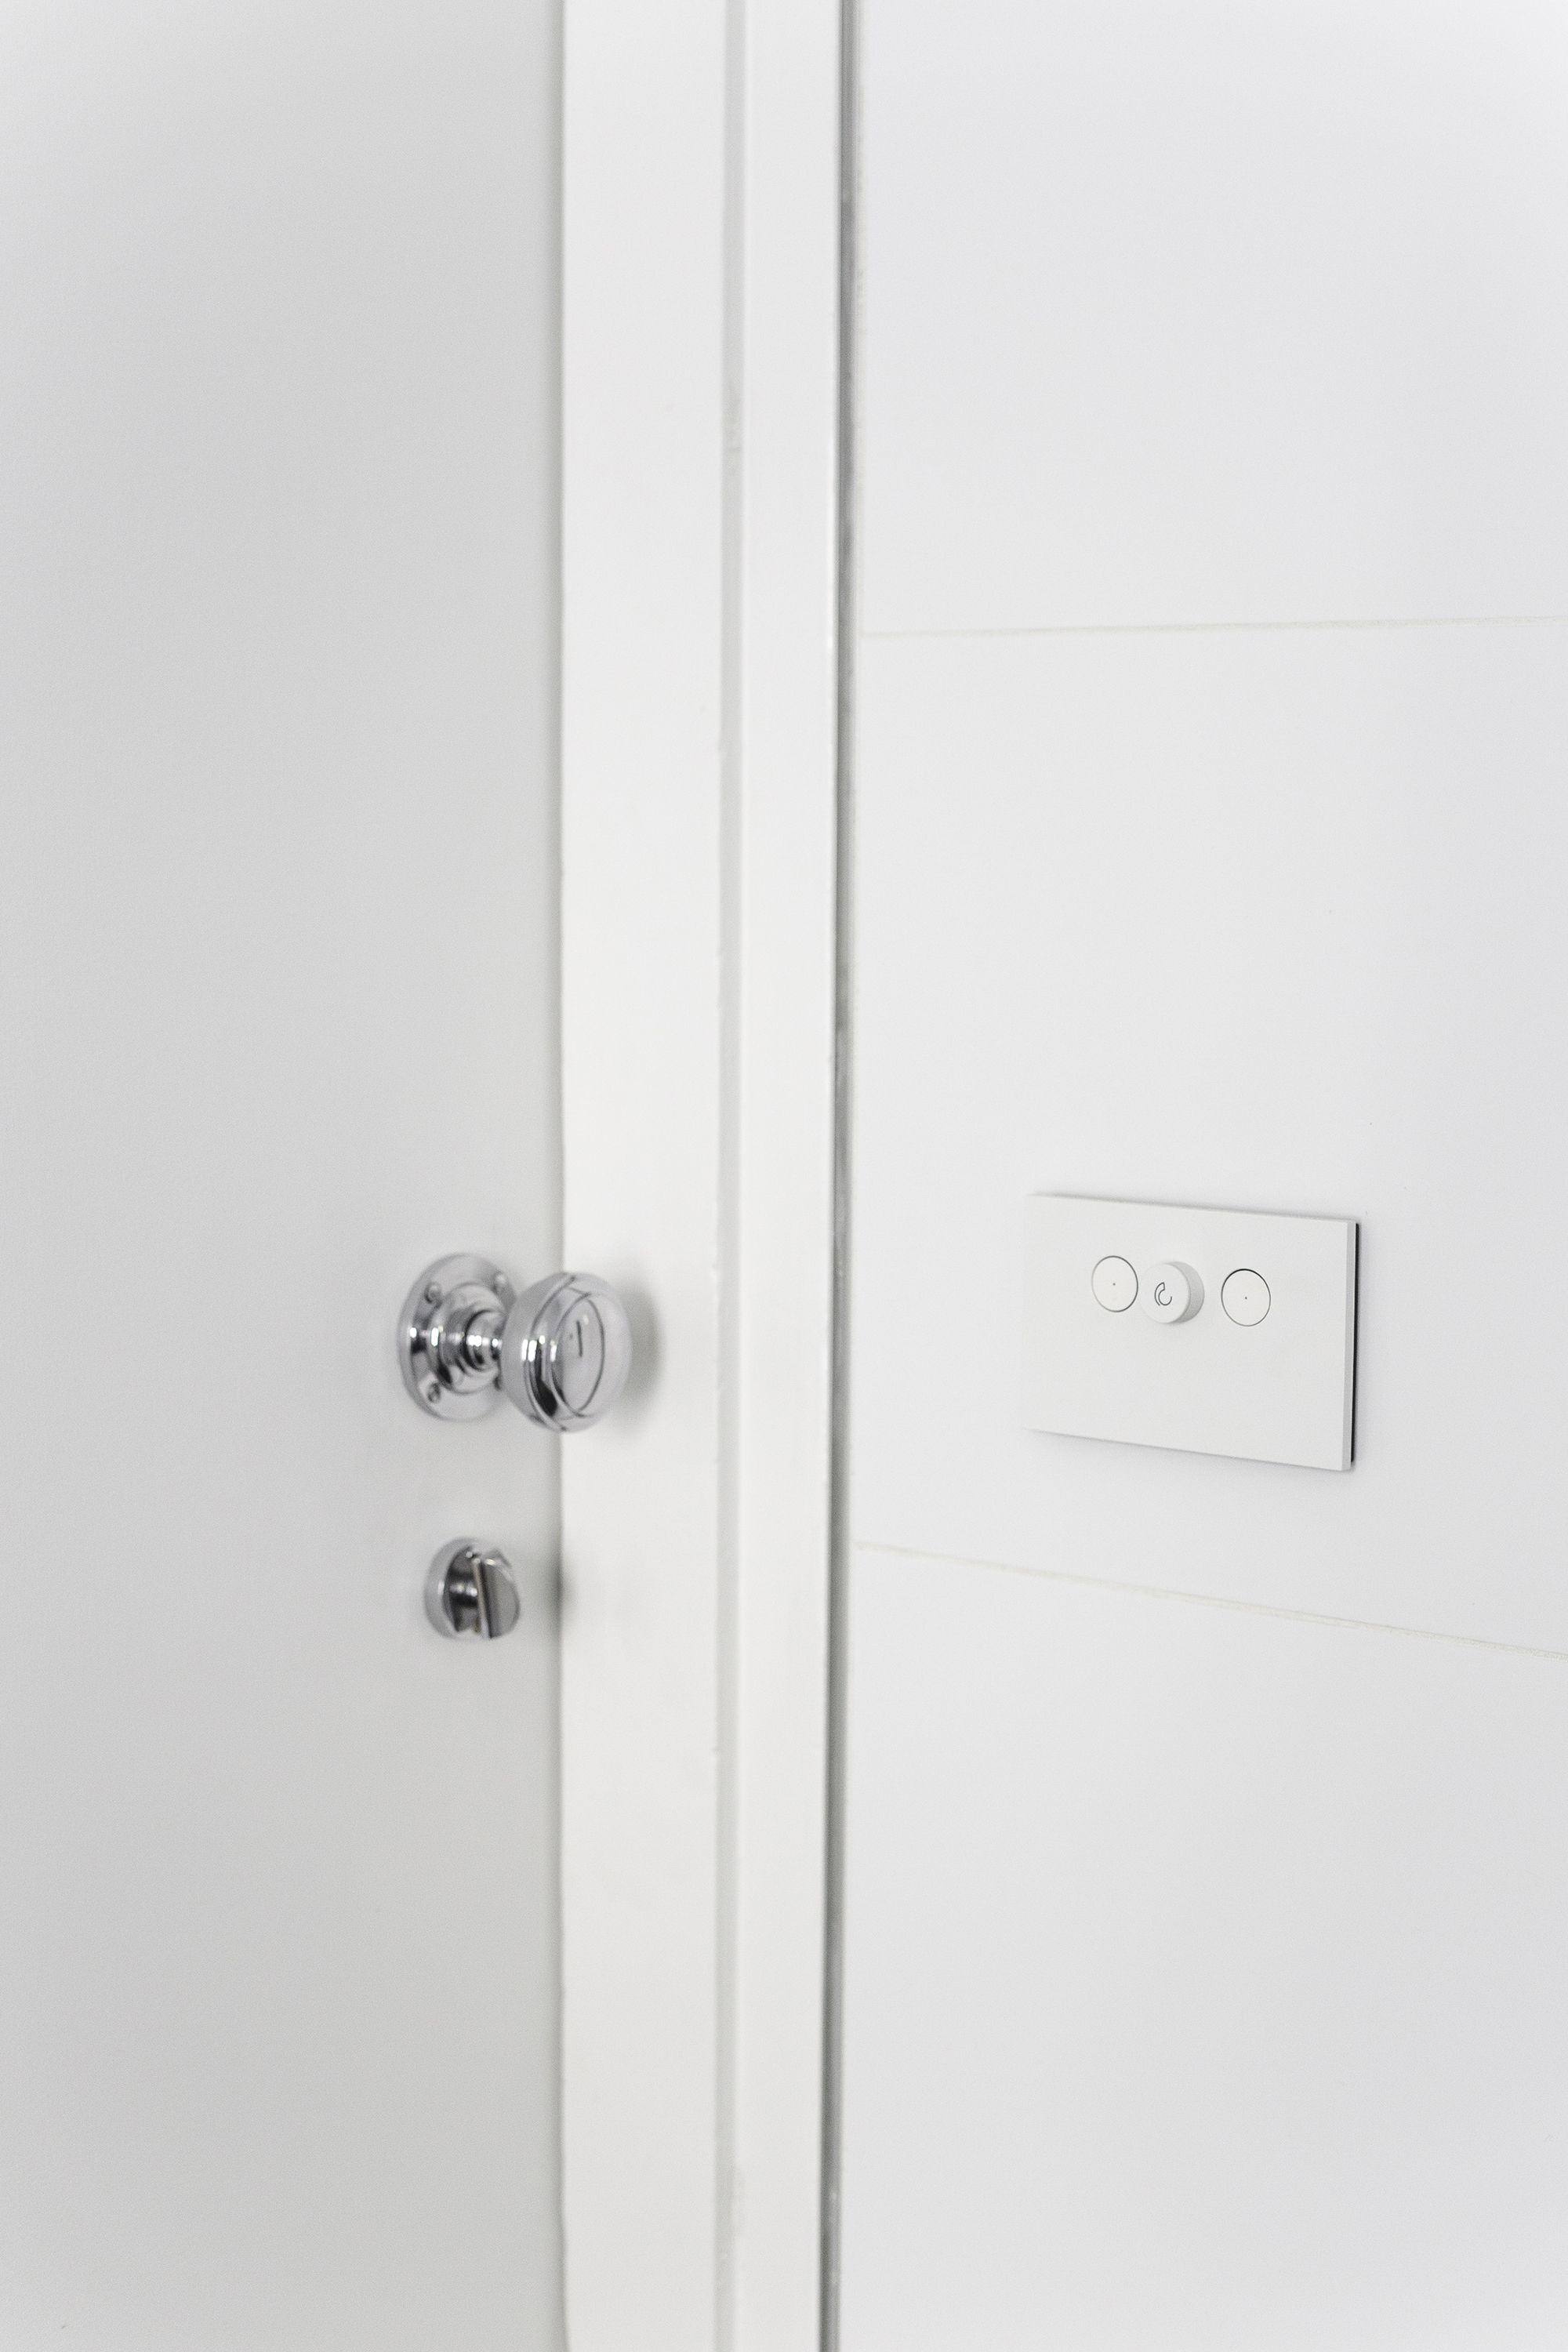 Bathroom Doors Handles old fashioned bathroom door handles. http://www.restorationonline